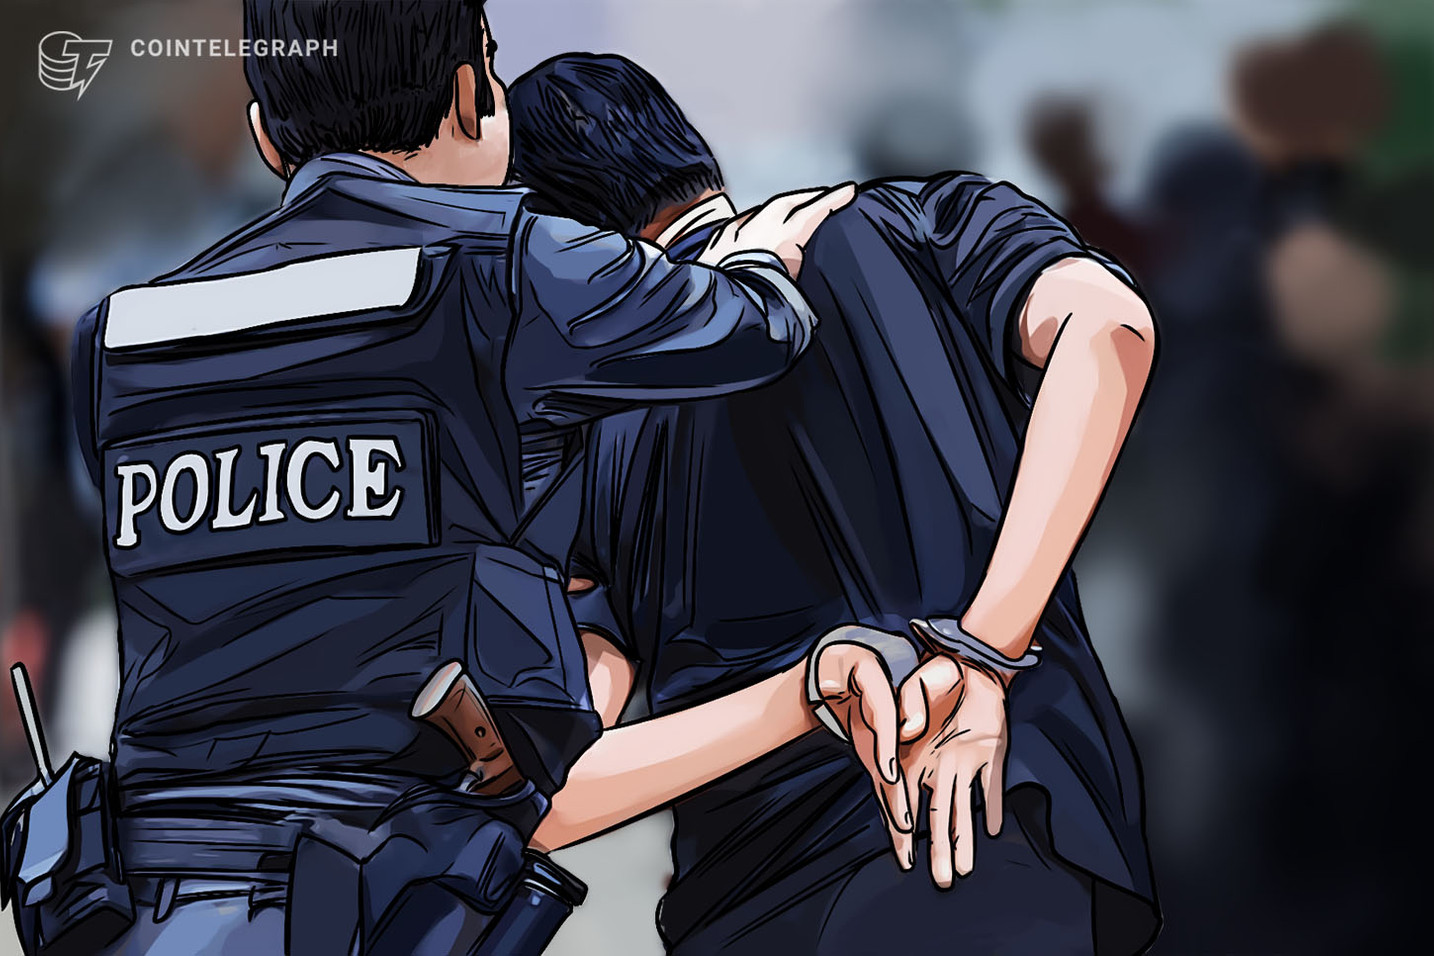 Monero's former maintainer arrested in the US for allegations unrelated to cryptocurrency